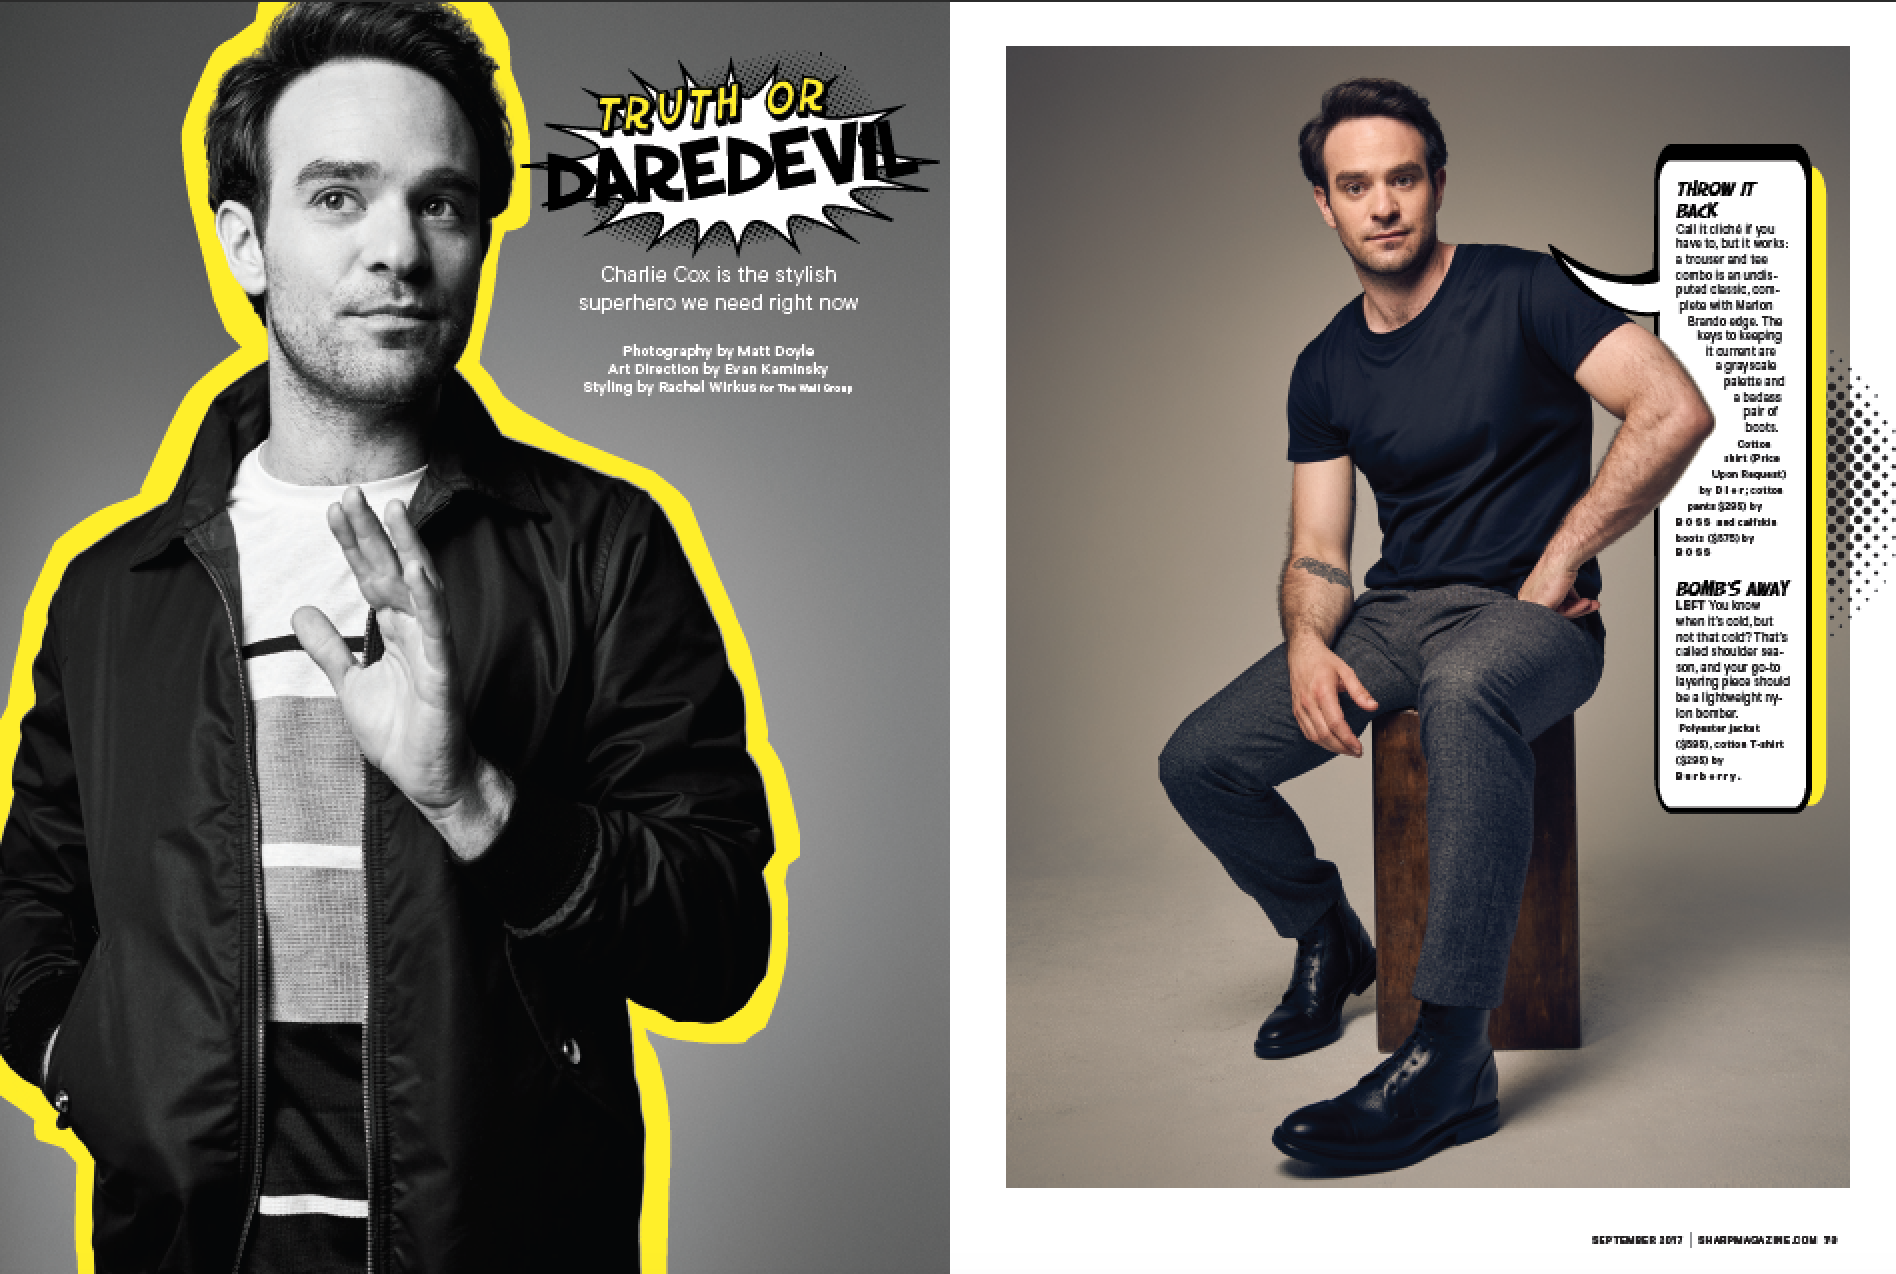 Actor Charlie Cox from Daredevil for Sharp magazine